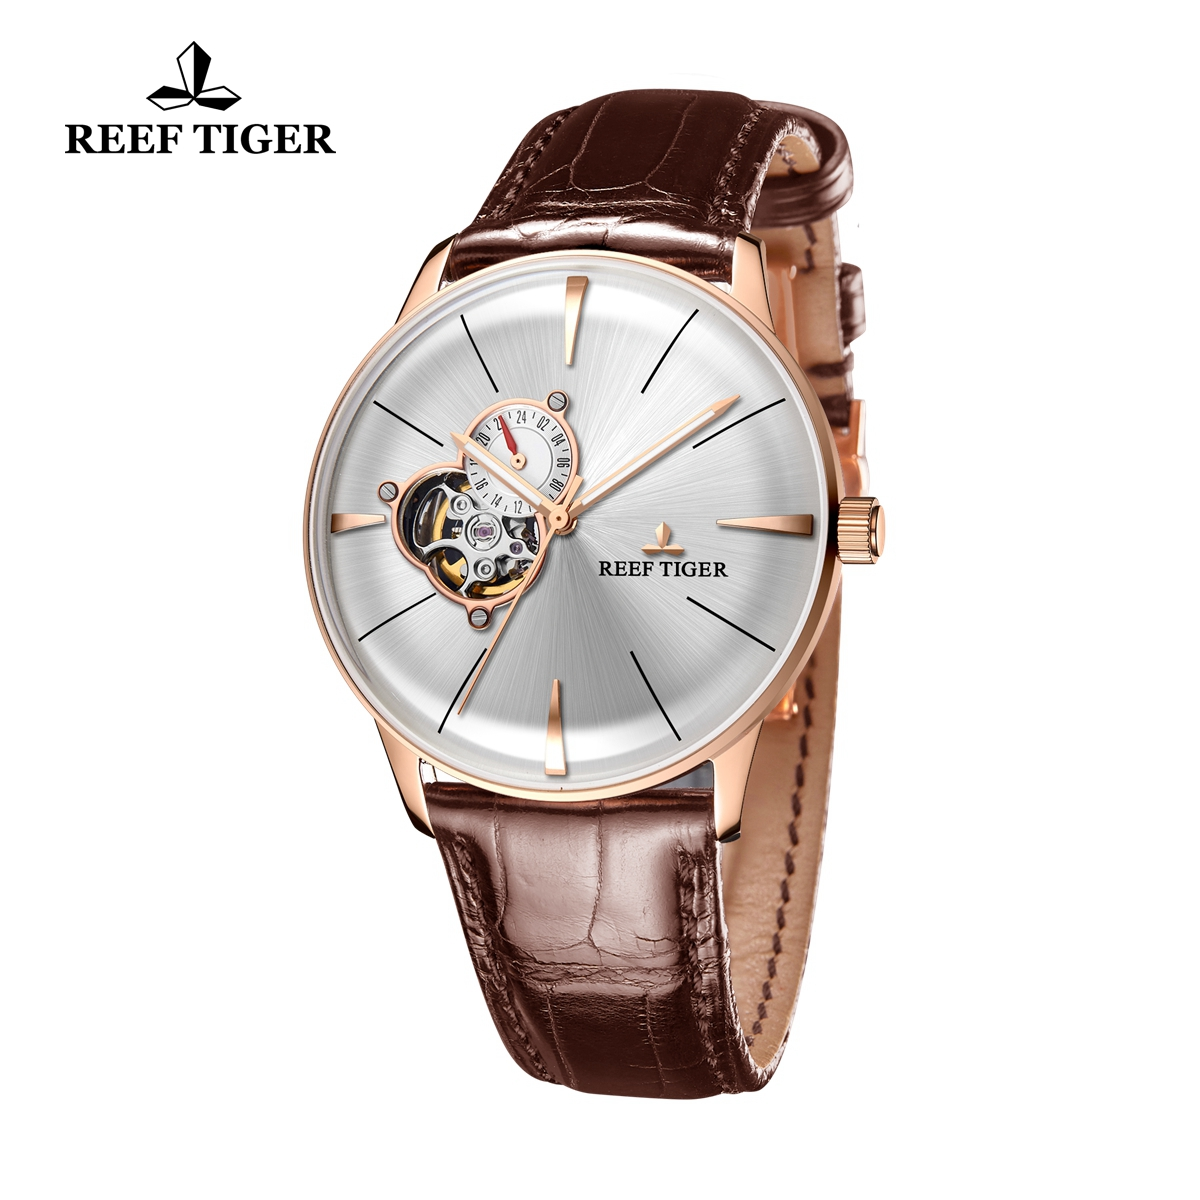 Reef Tiger Classic Glory White Dial CAutomatic Watch alfskin Leather Strap RGA8239-PWB